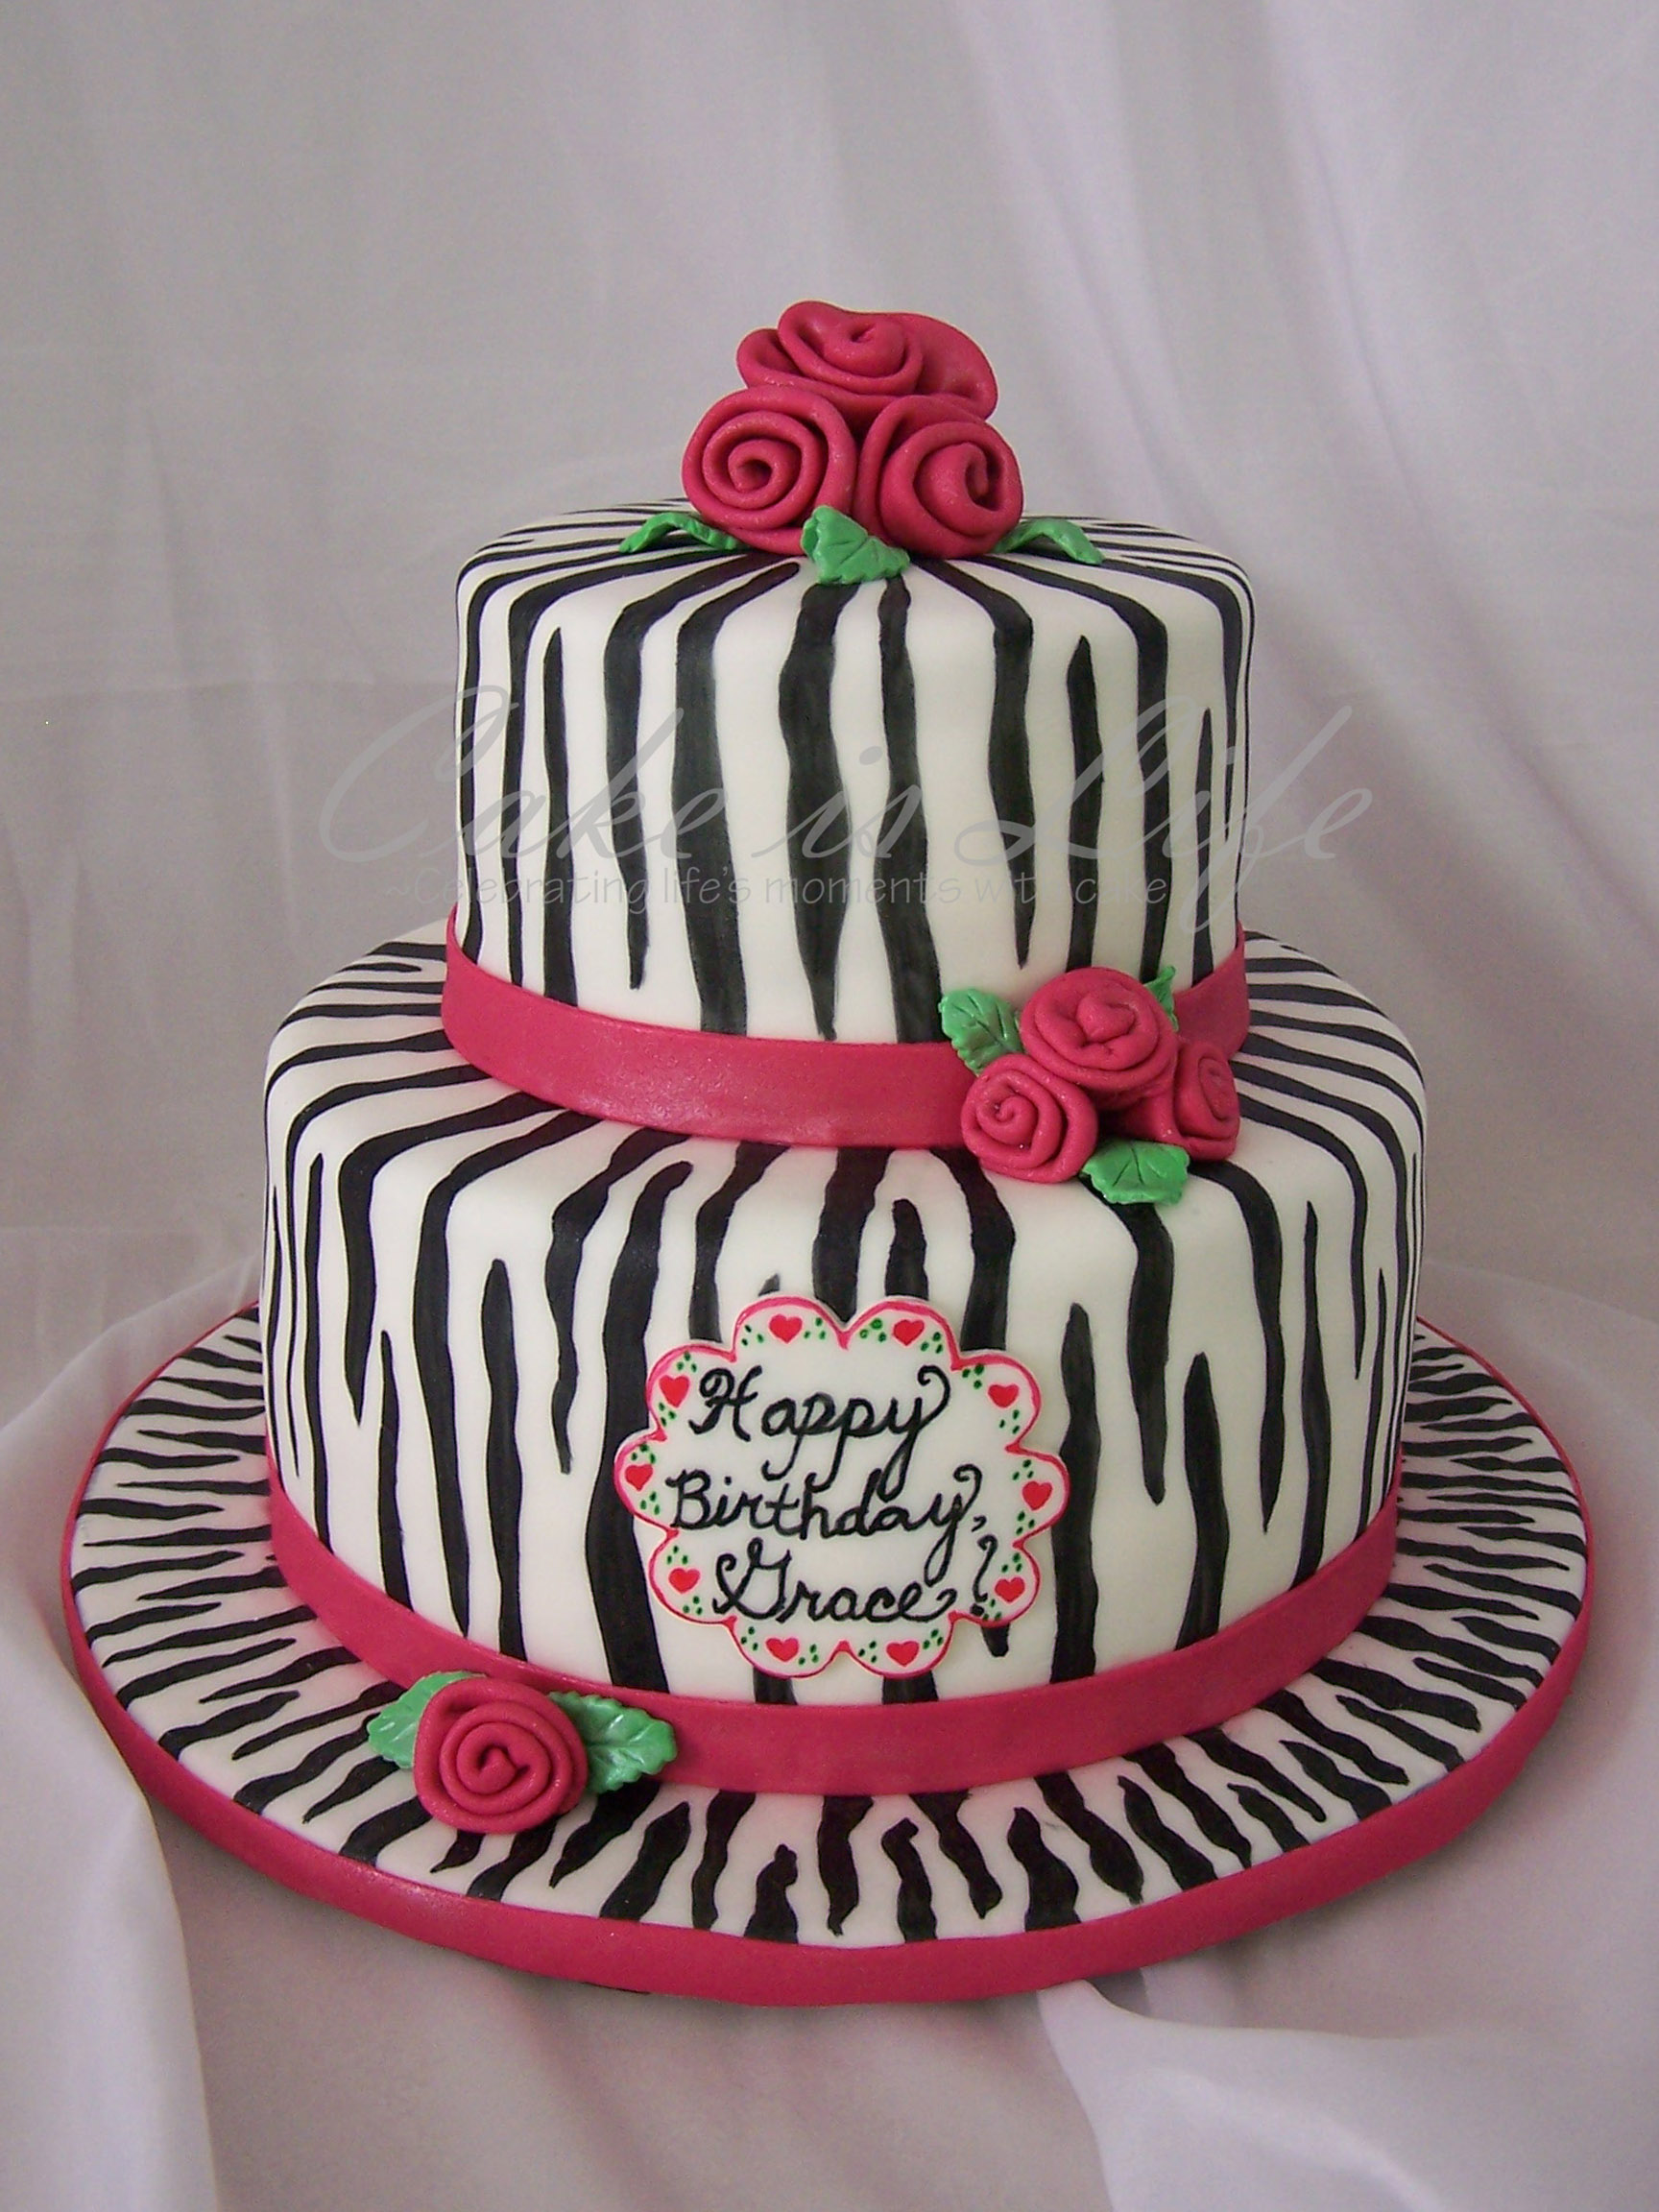 pictures of birthday cakes for adults  390814